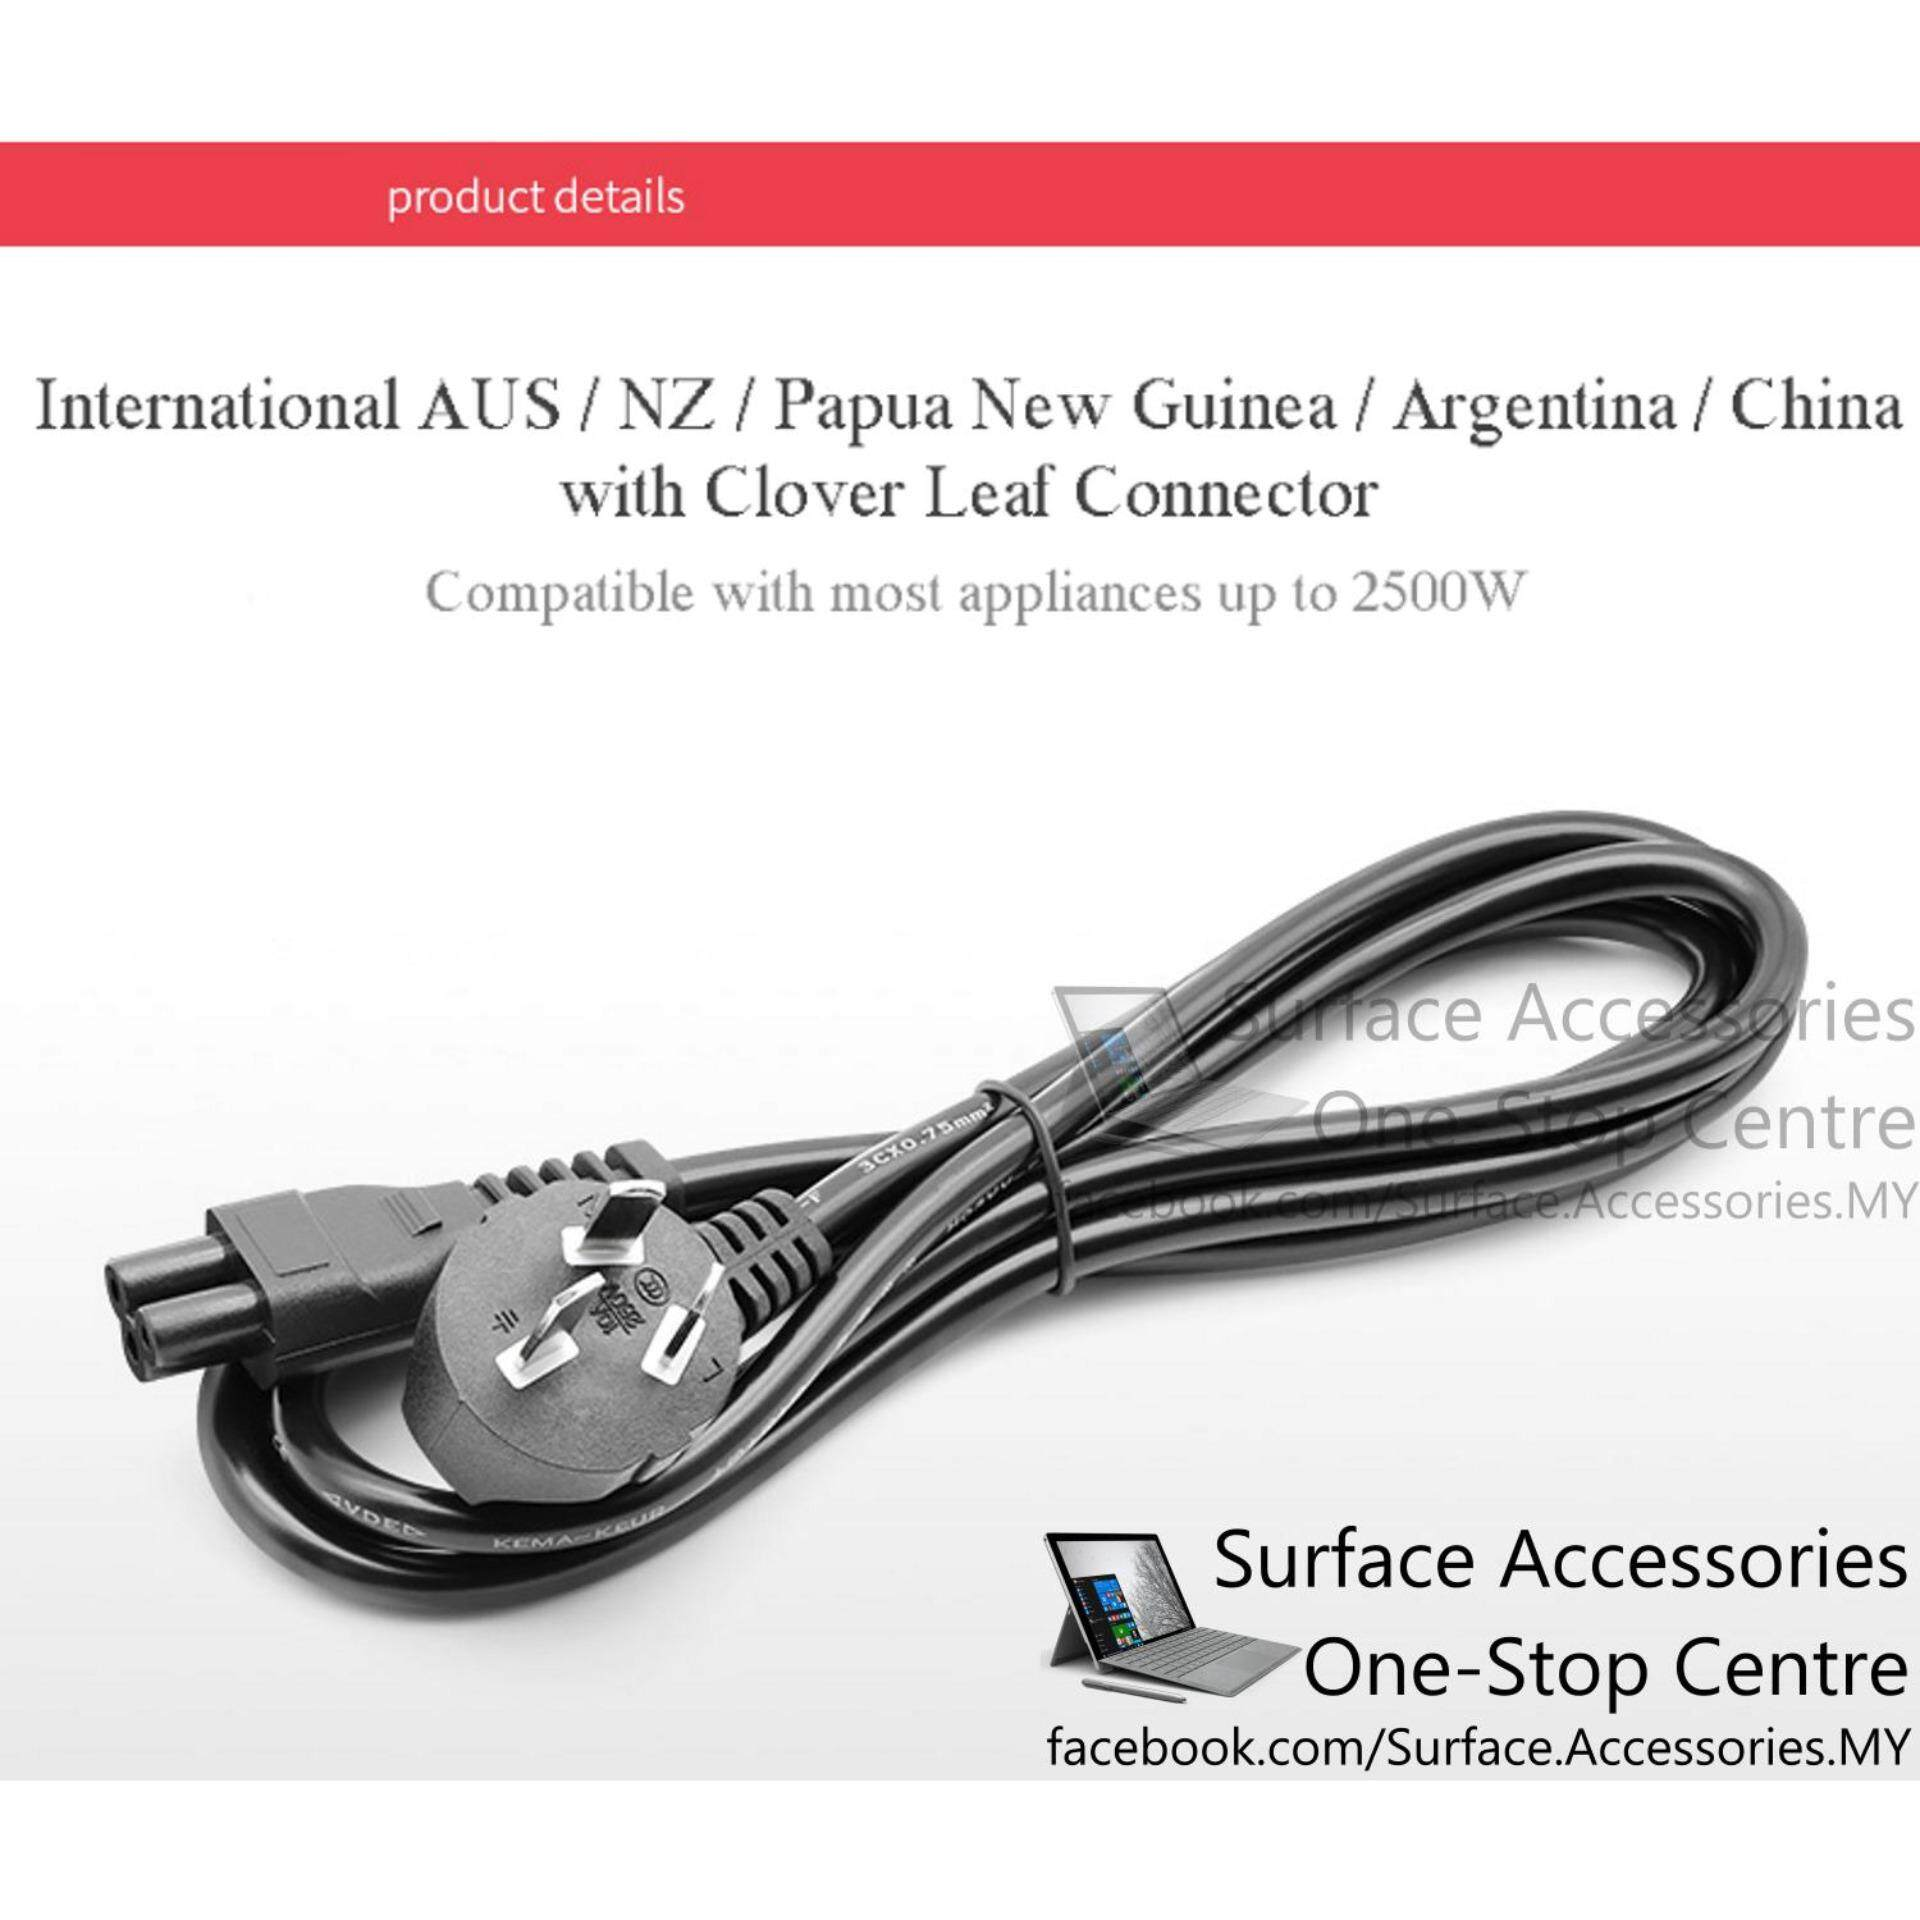 Malaysia Ac Power Cord 3 Pins Laptop Clover Leaf Australia New Cable Wiring Zealand Argentina China